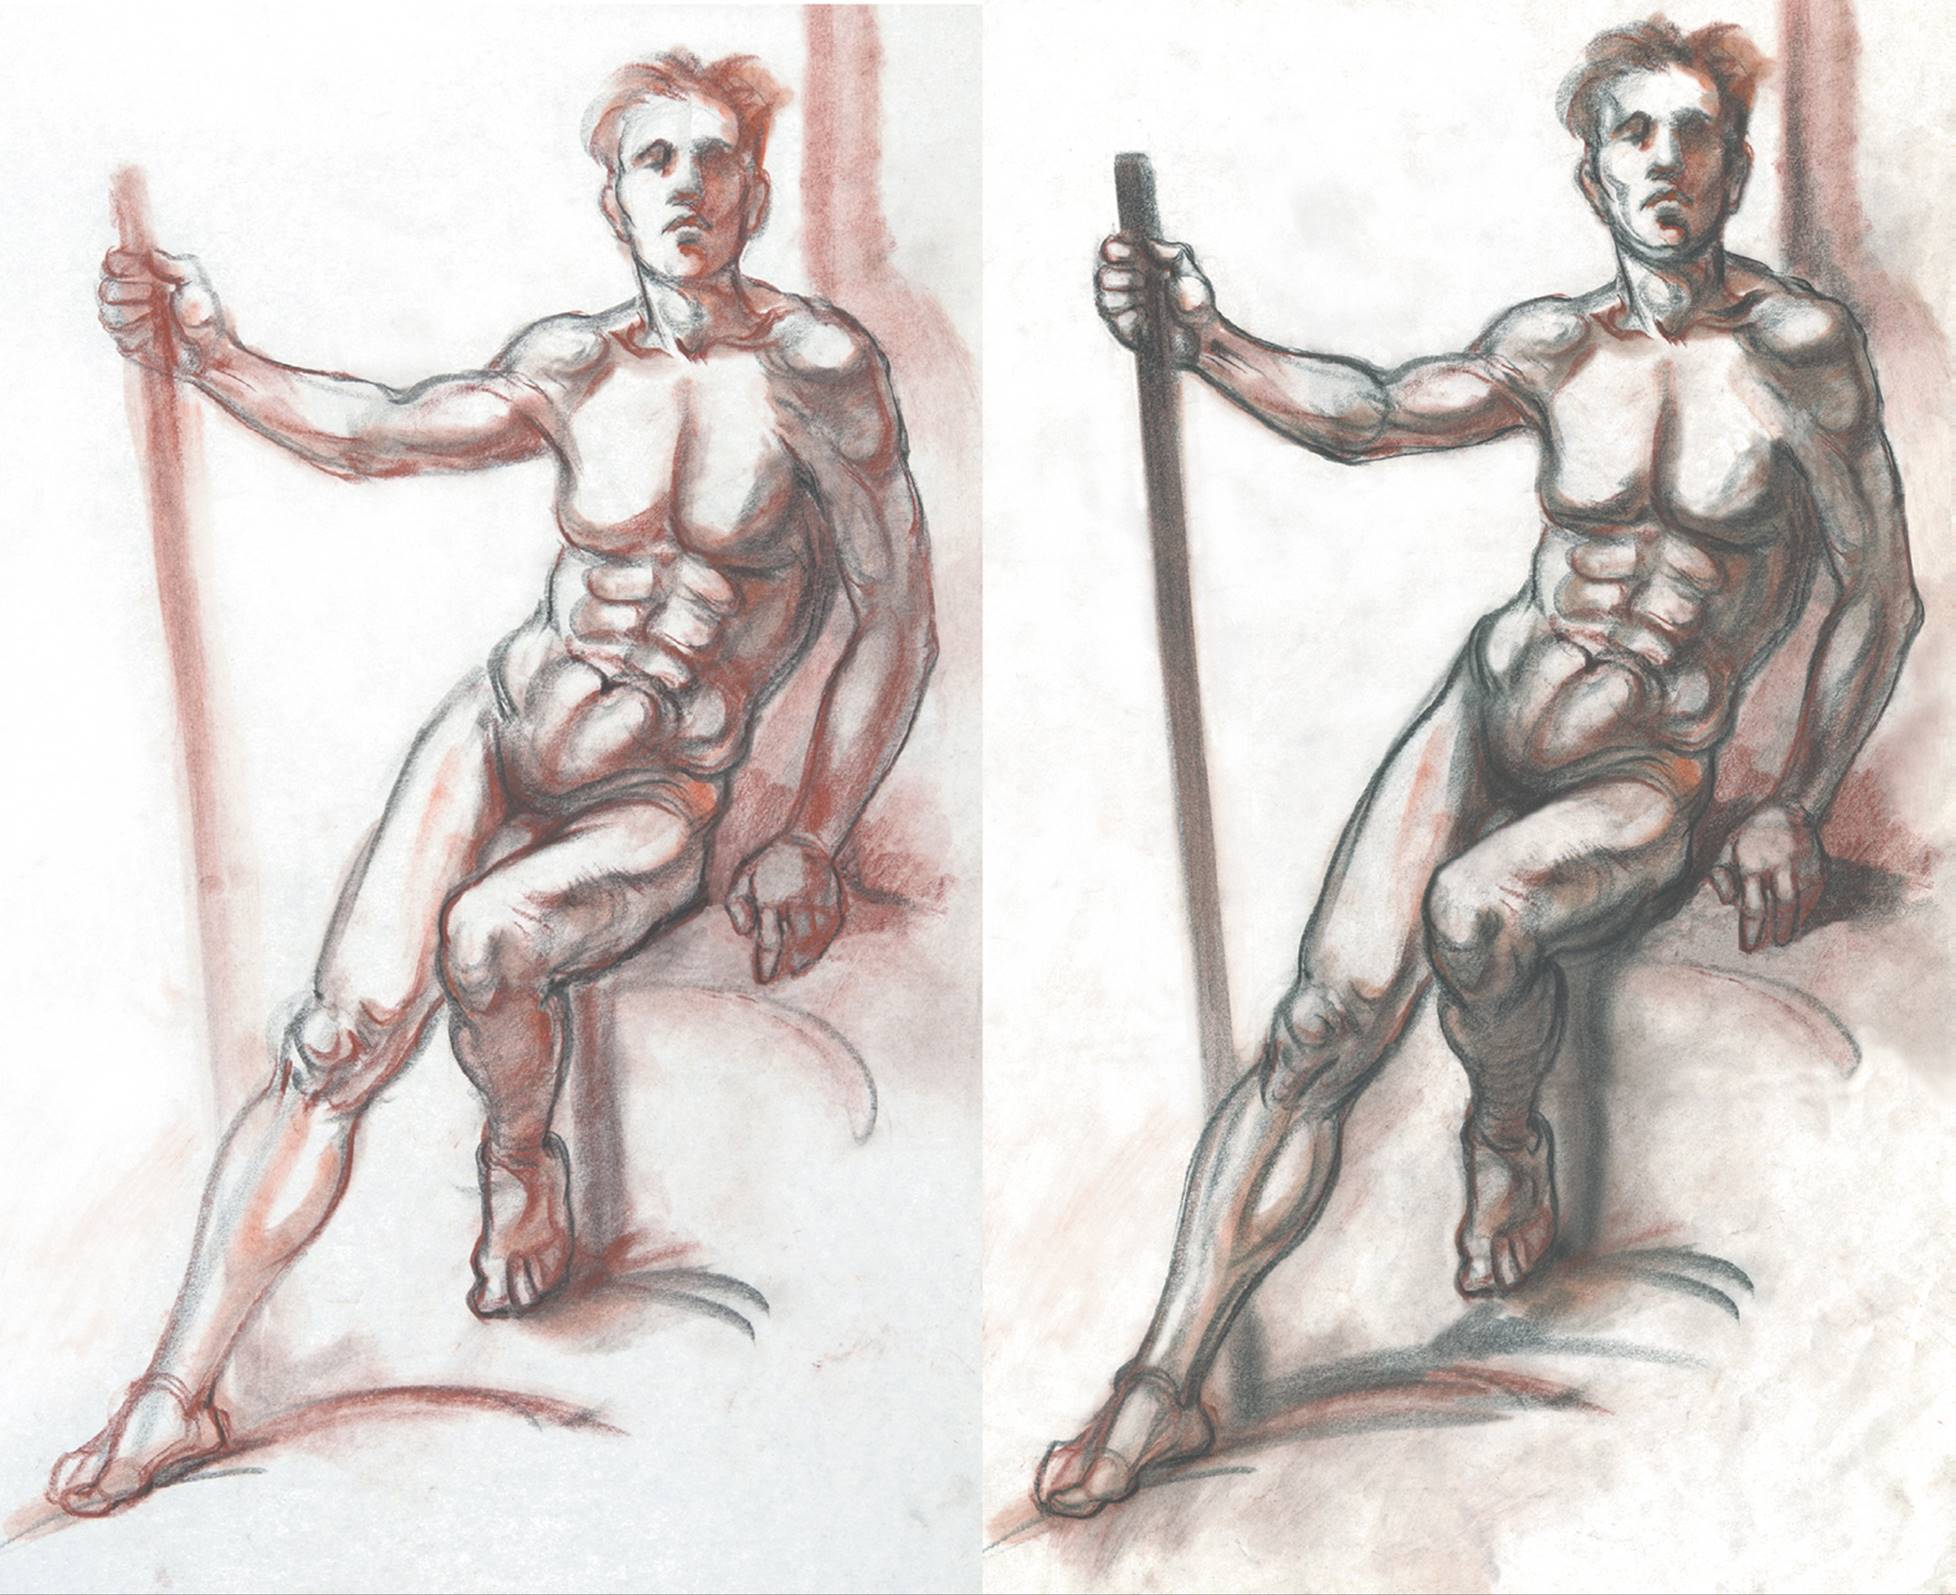 Gesture and Action Drawing - Classic Human Anatomy in Motion: The